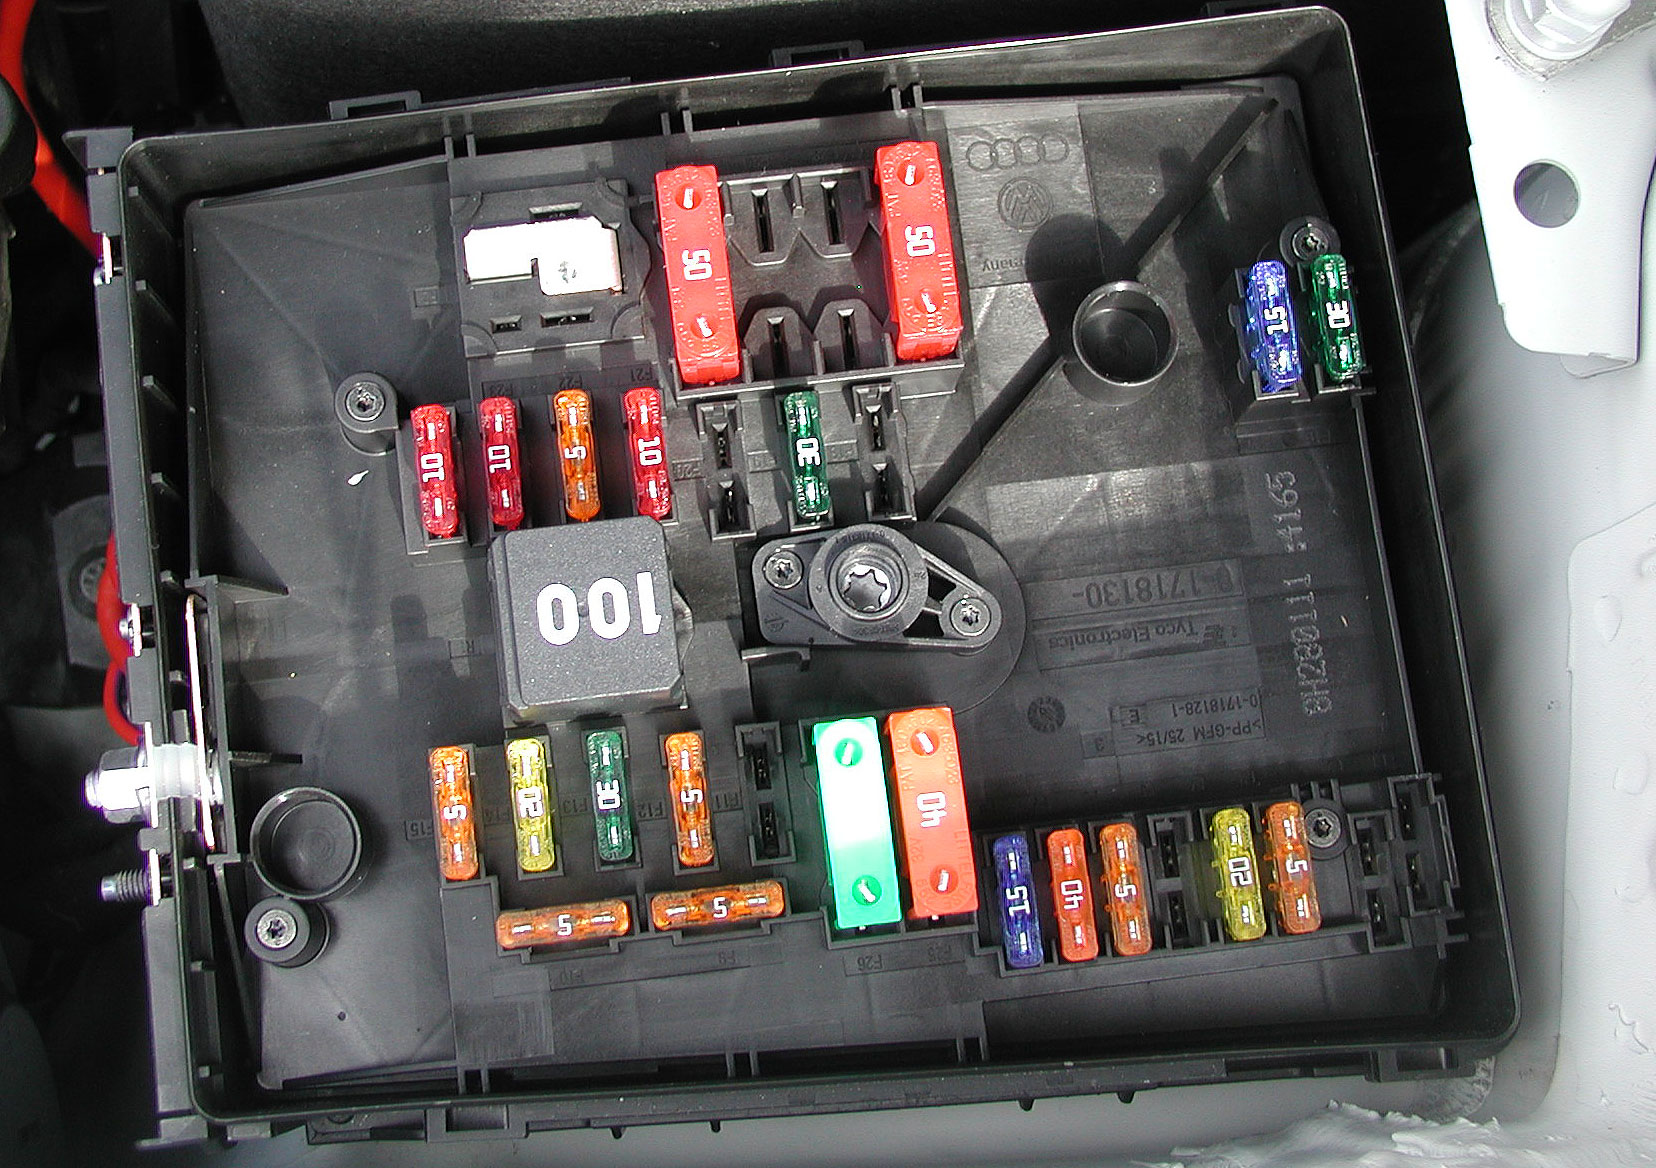 engineFuses2 golf mkv 1 9 tdi rcd 310 battery drain the volkswagen club of Bussmann Fuse Box Schematic Diagram at bakdesigns.co